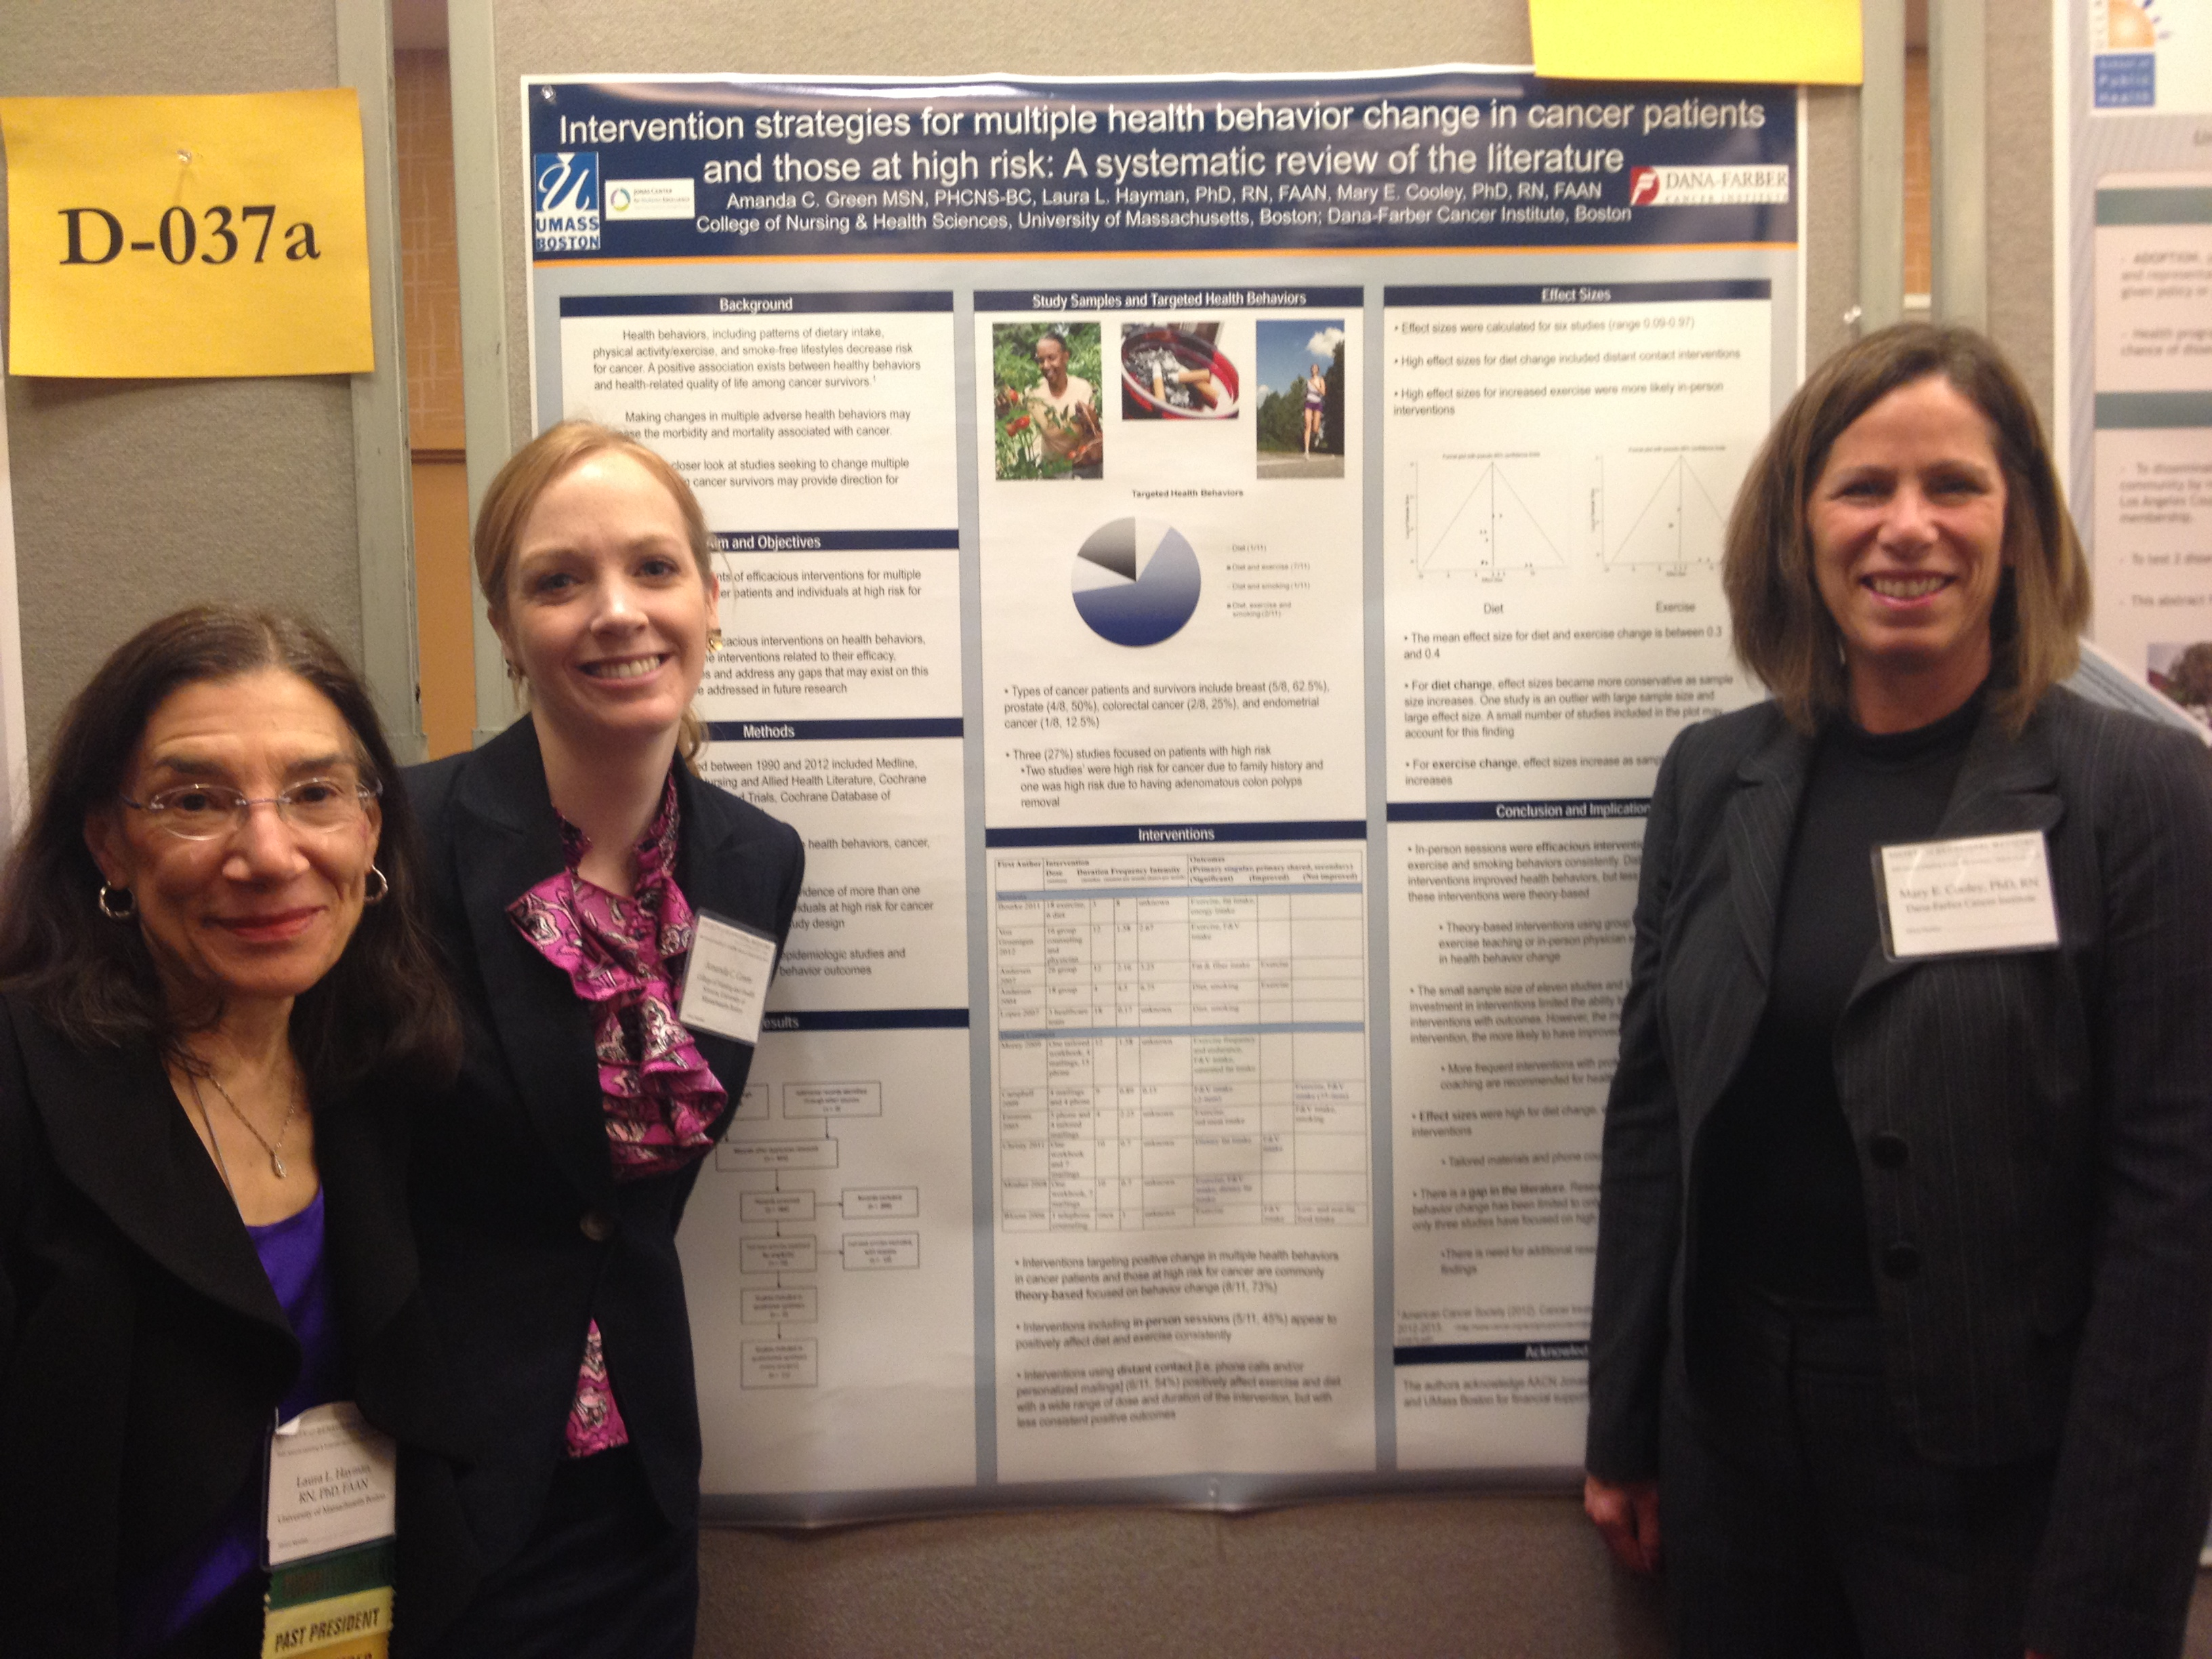 Doctoral students Amanda Green (middle) with CNHS faculty mentors Drs. Laura L. Hayman (left) and Mary Cooley presenting a poster at the 34th Annual Meeting of the Society of Behavioral Medicine, San Francisco, CA, March 2013.